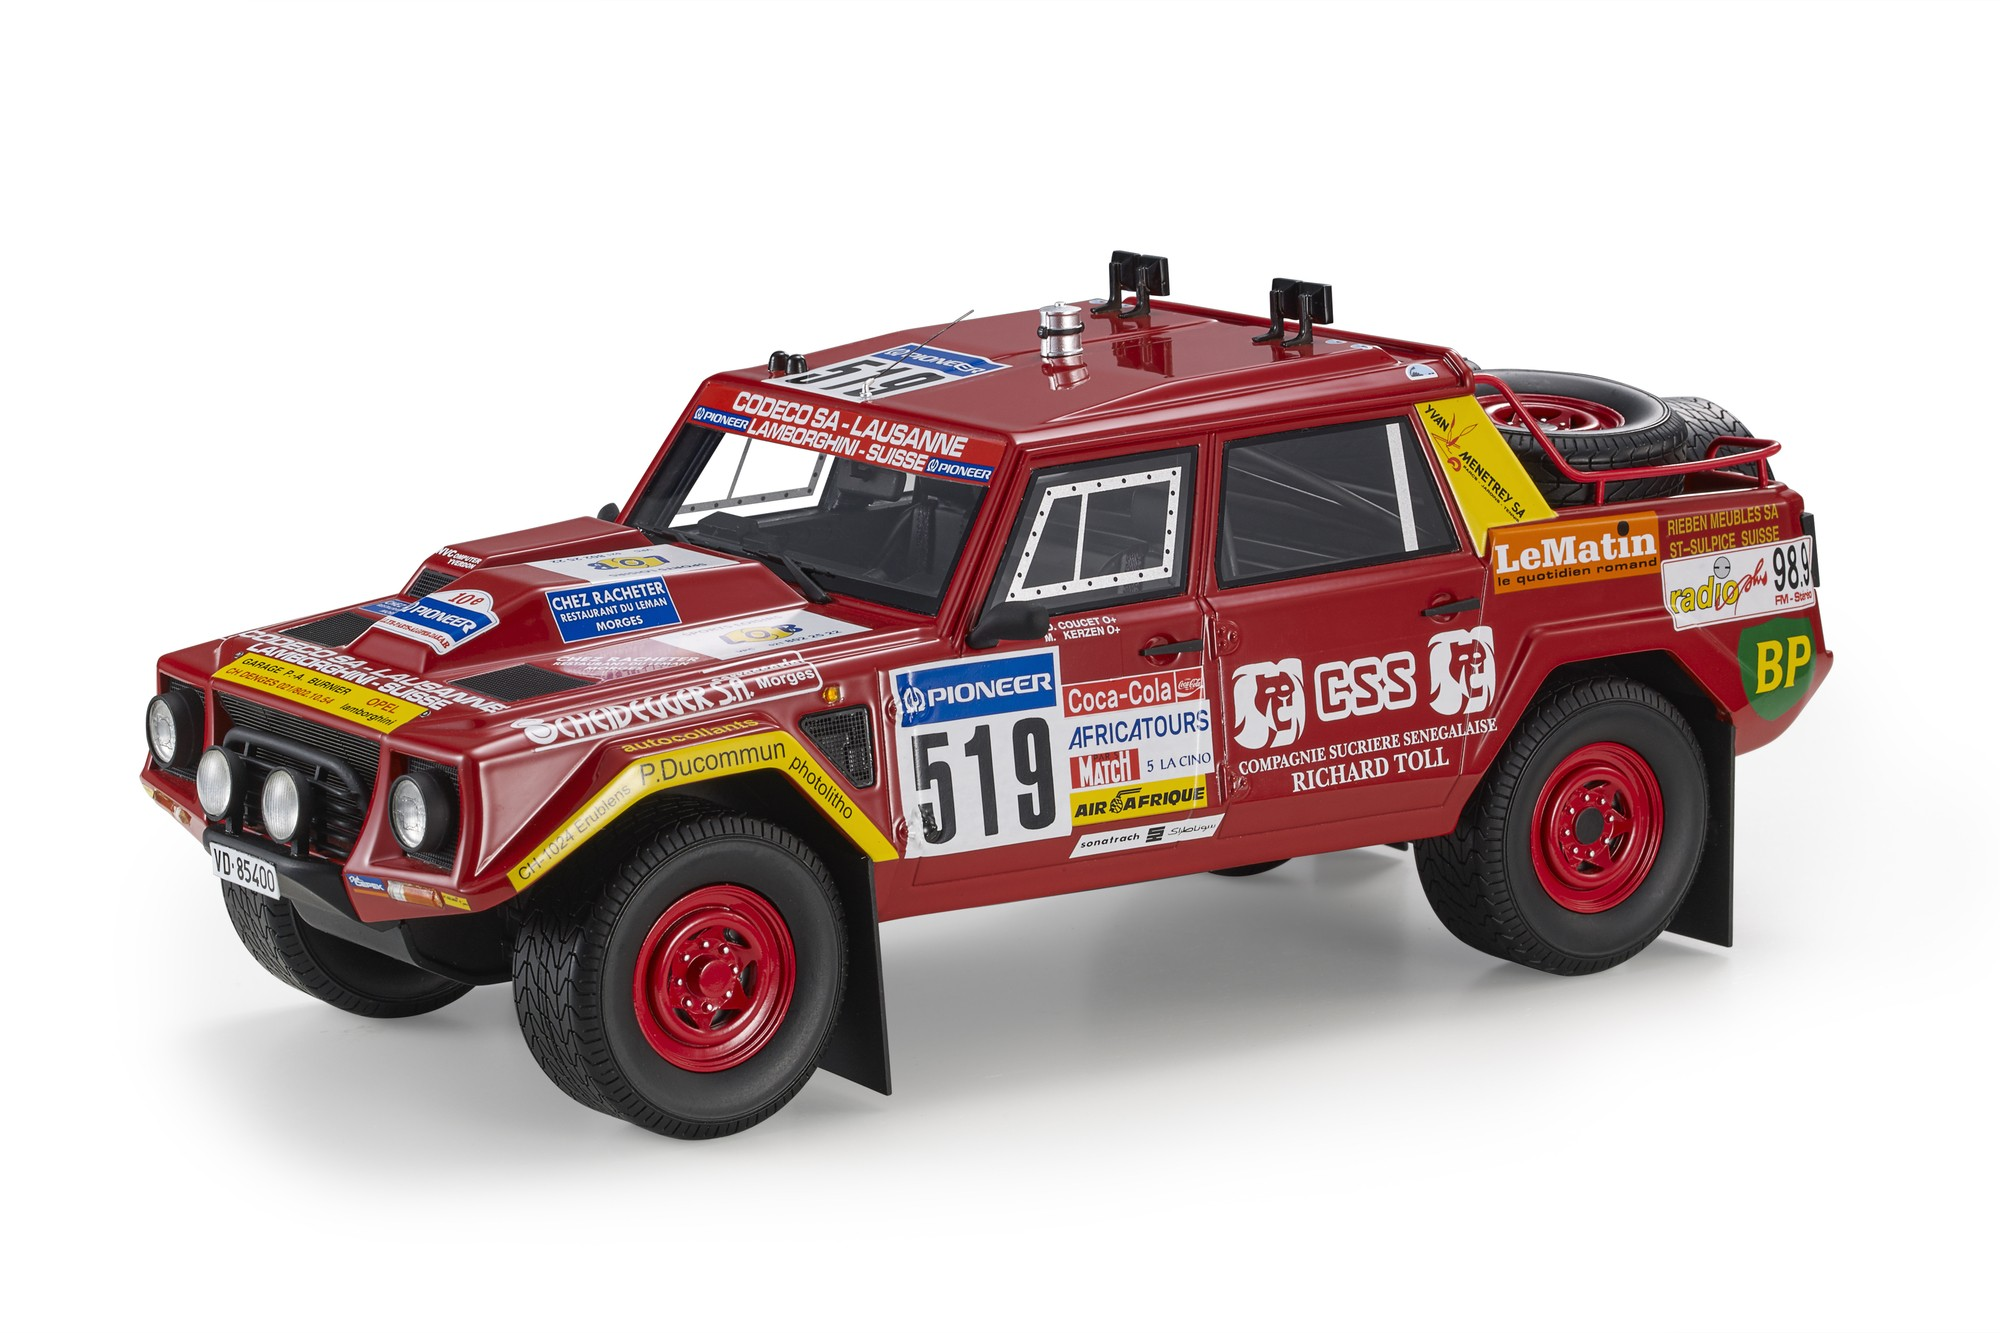 Lamborghini LM002 Pick-Up #519 Coucet/Kerzen Rally Paris Dakar 1988 1:18 Top Marques